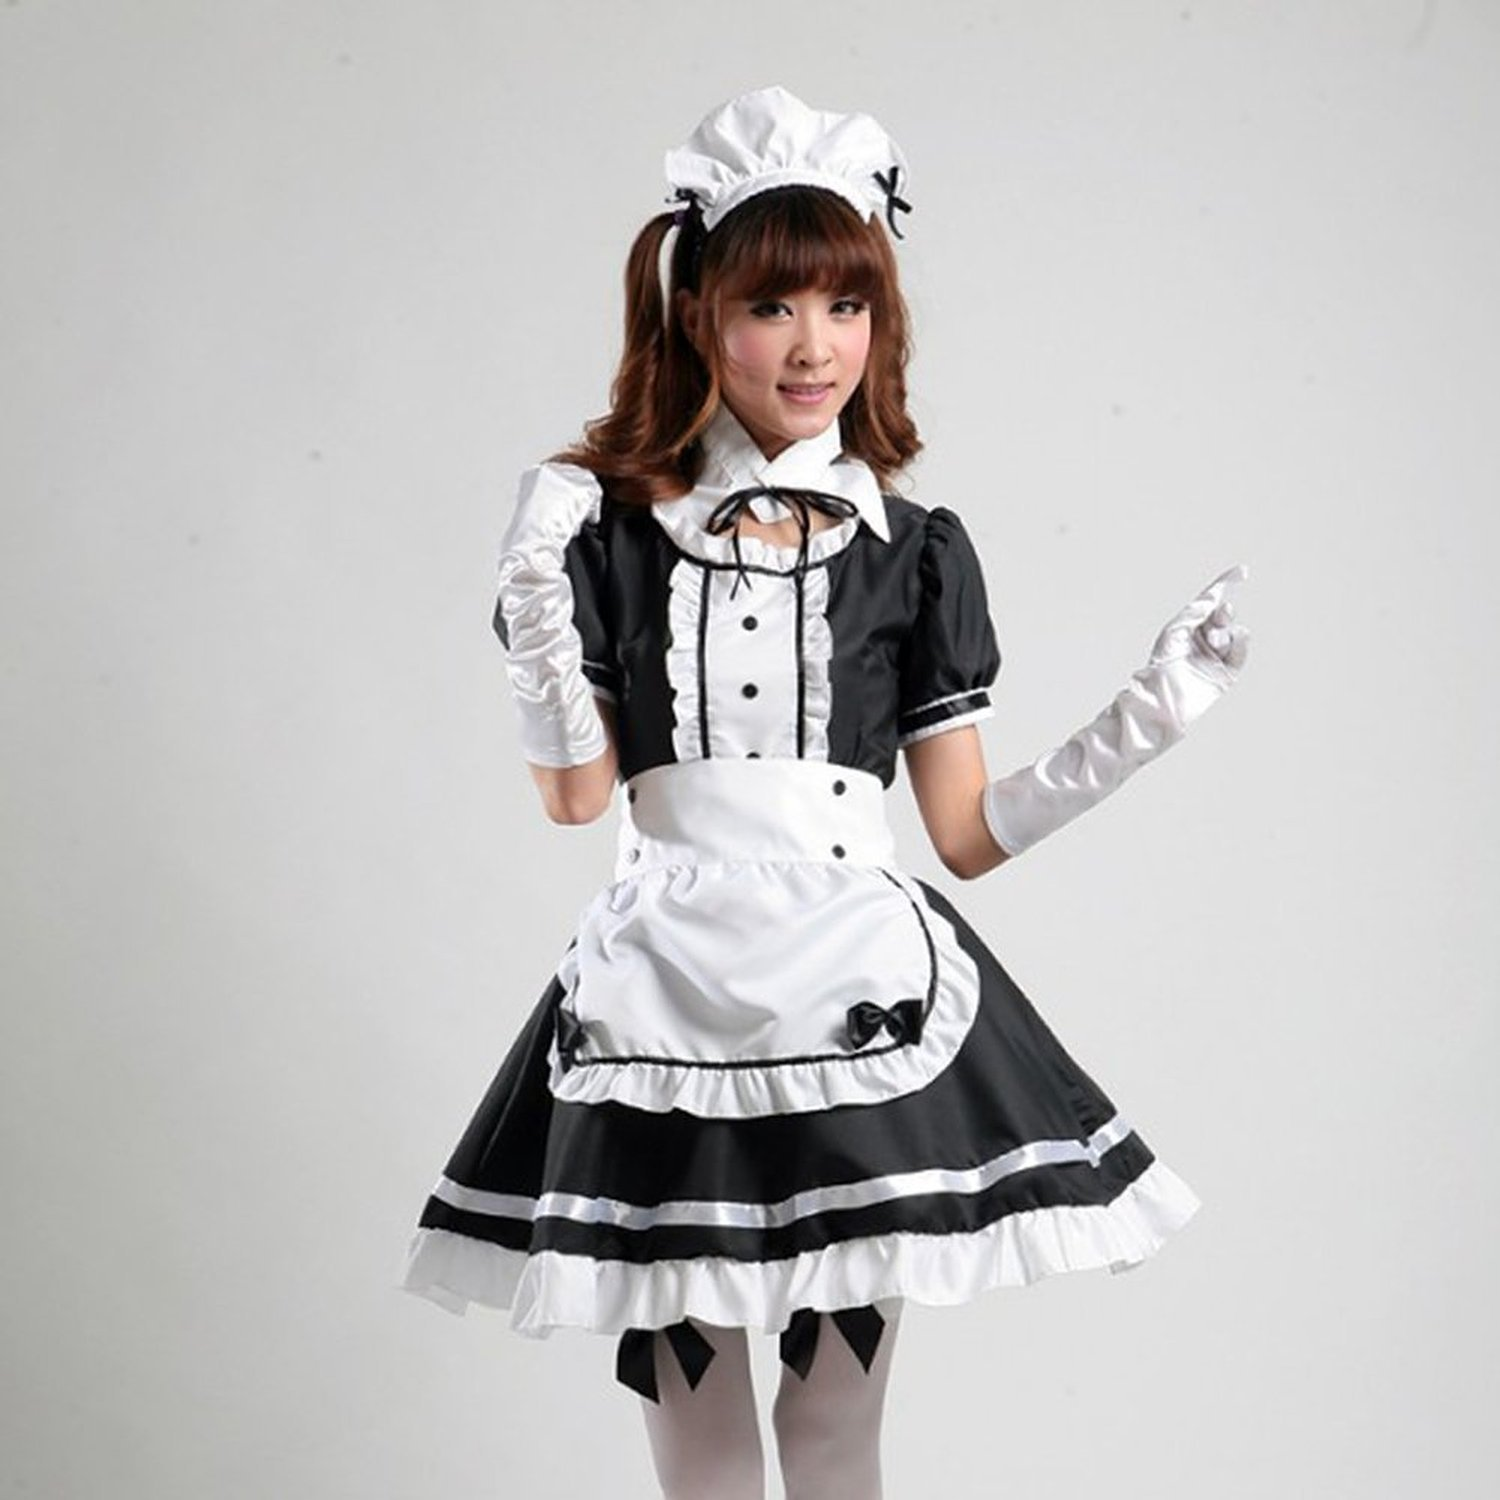 Amazon com avacostume womens anime cosplay french apron maid fancy dress costume clothing